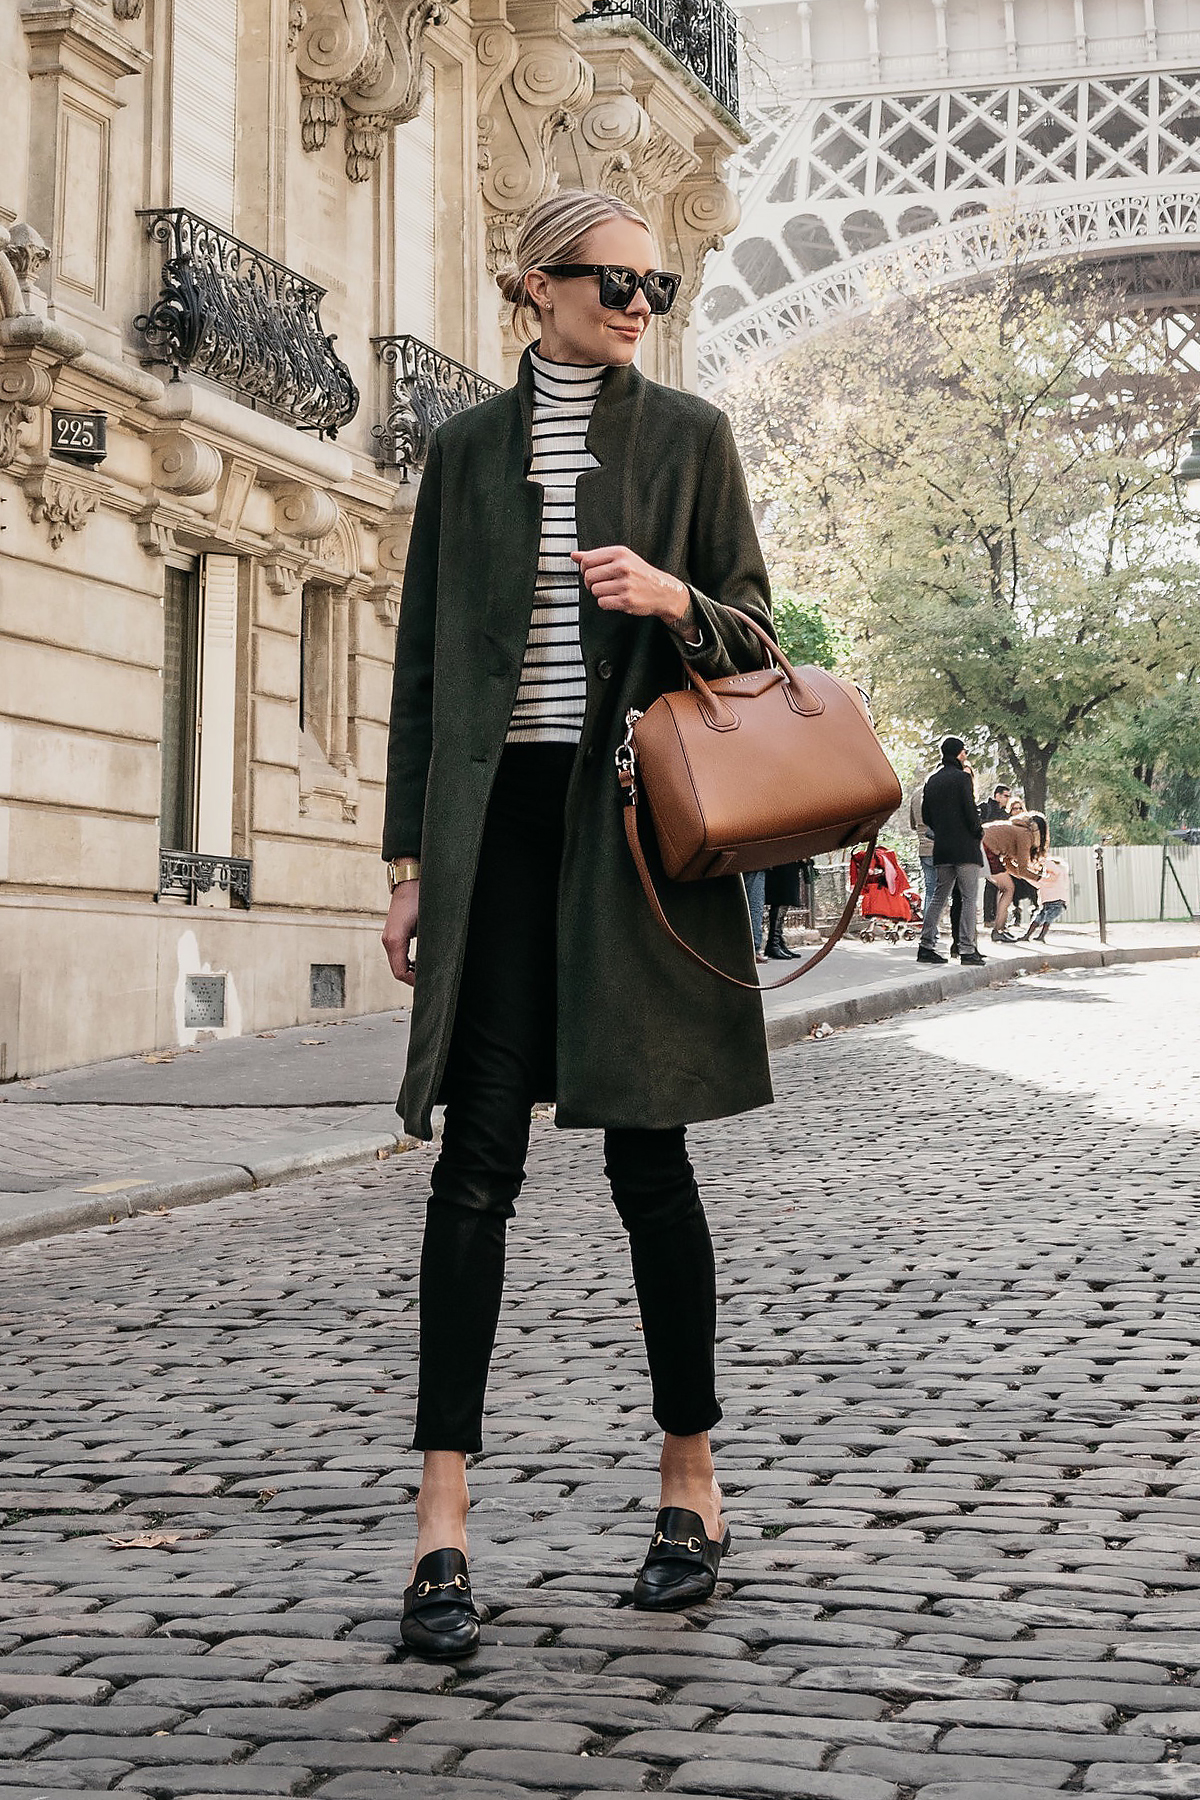 Eiffel Tower Paris France Blonde Woman Wearing Green Wool Coat Black White Stripe Turtleneck Black Skinny Jeans Givency Antigona Cognac Satchel Gucci Mules Fashion Jackson Dallas Blogger Fashion Blogger Street Style